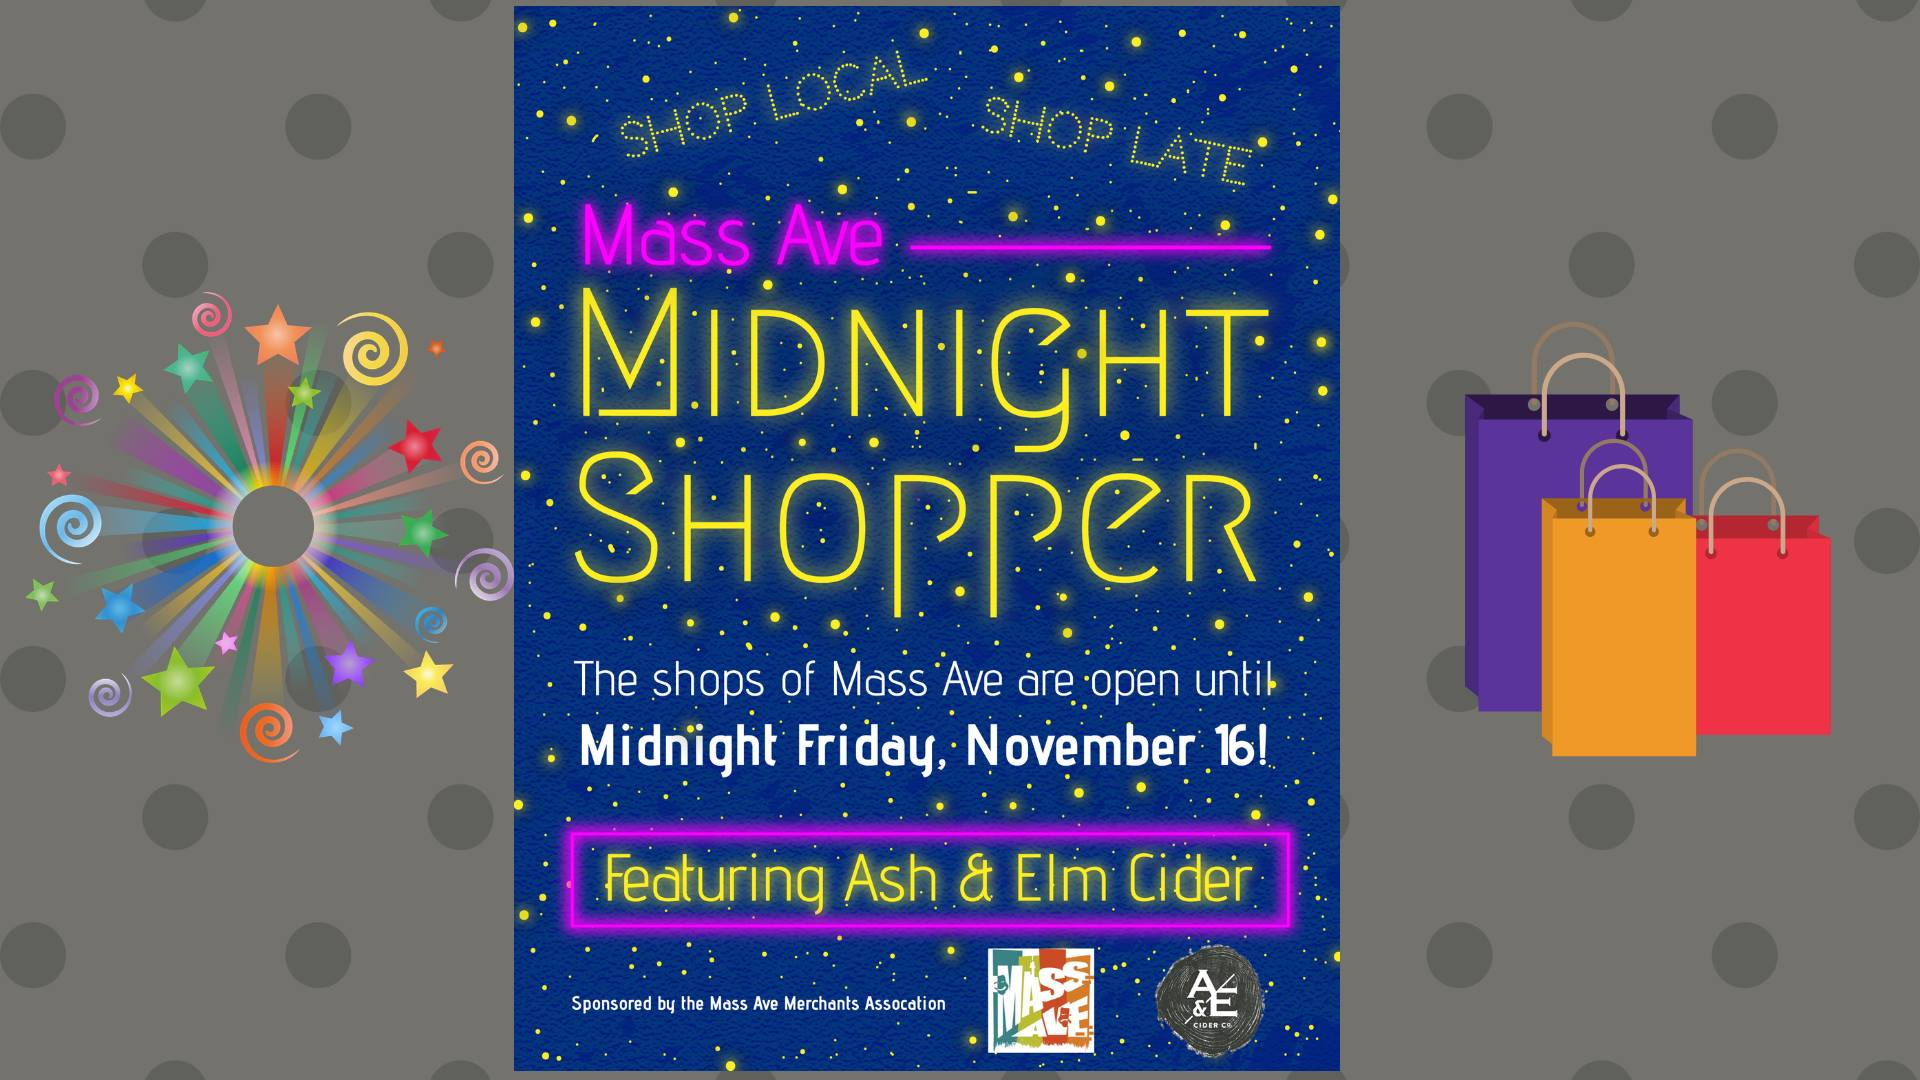 MIDNIGHT SHOPPER.jpg